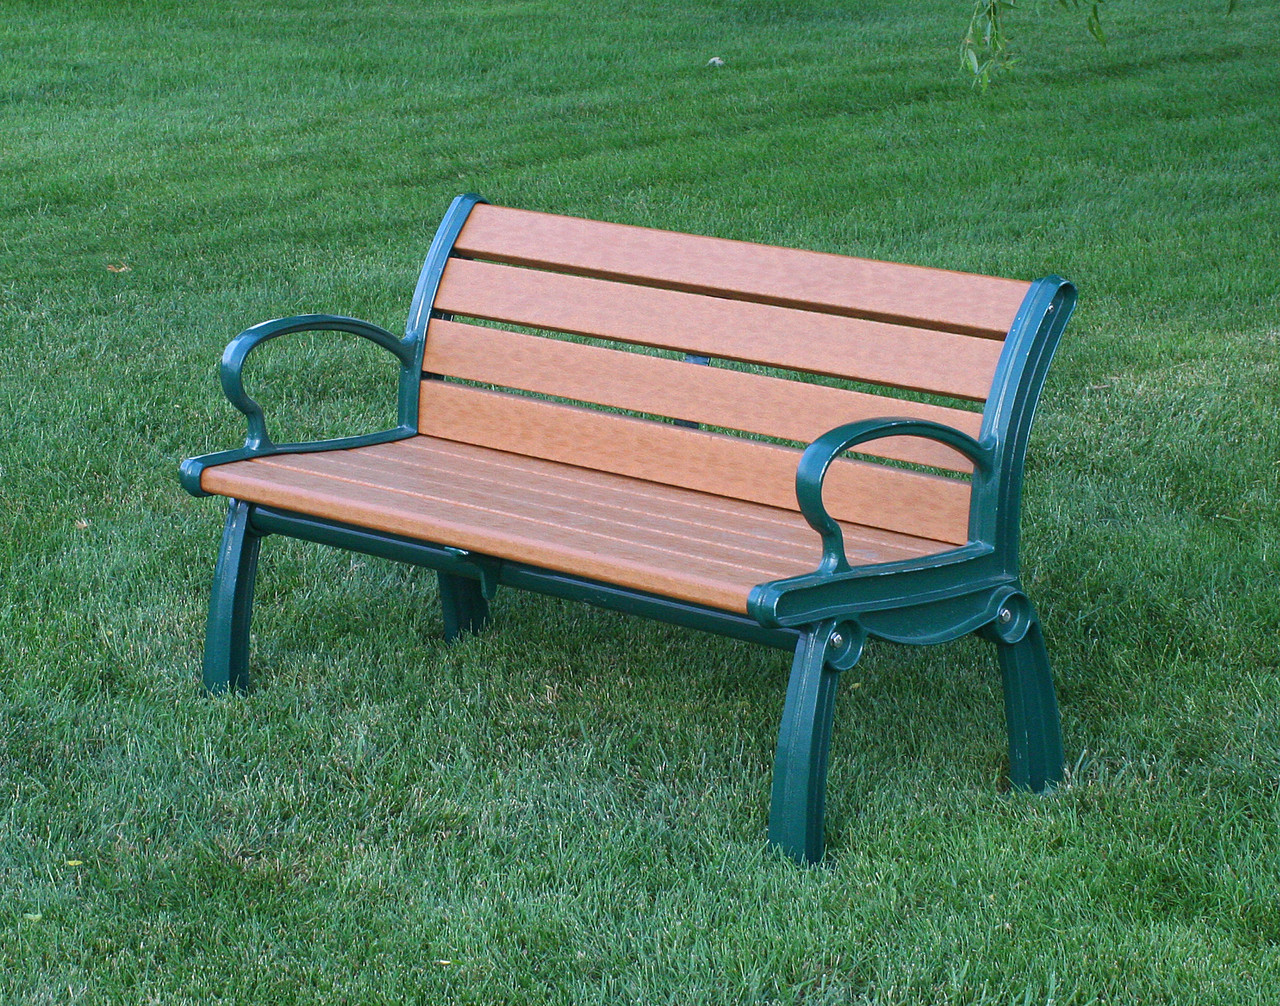 Heritage Recycled Plastic Outdoor And Park Bench 4